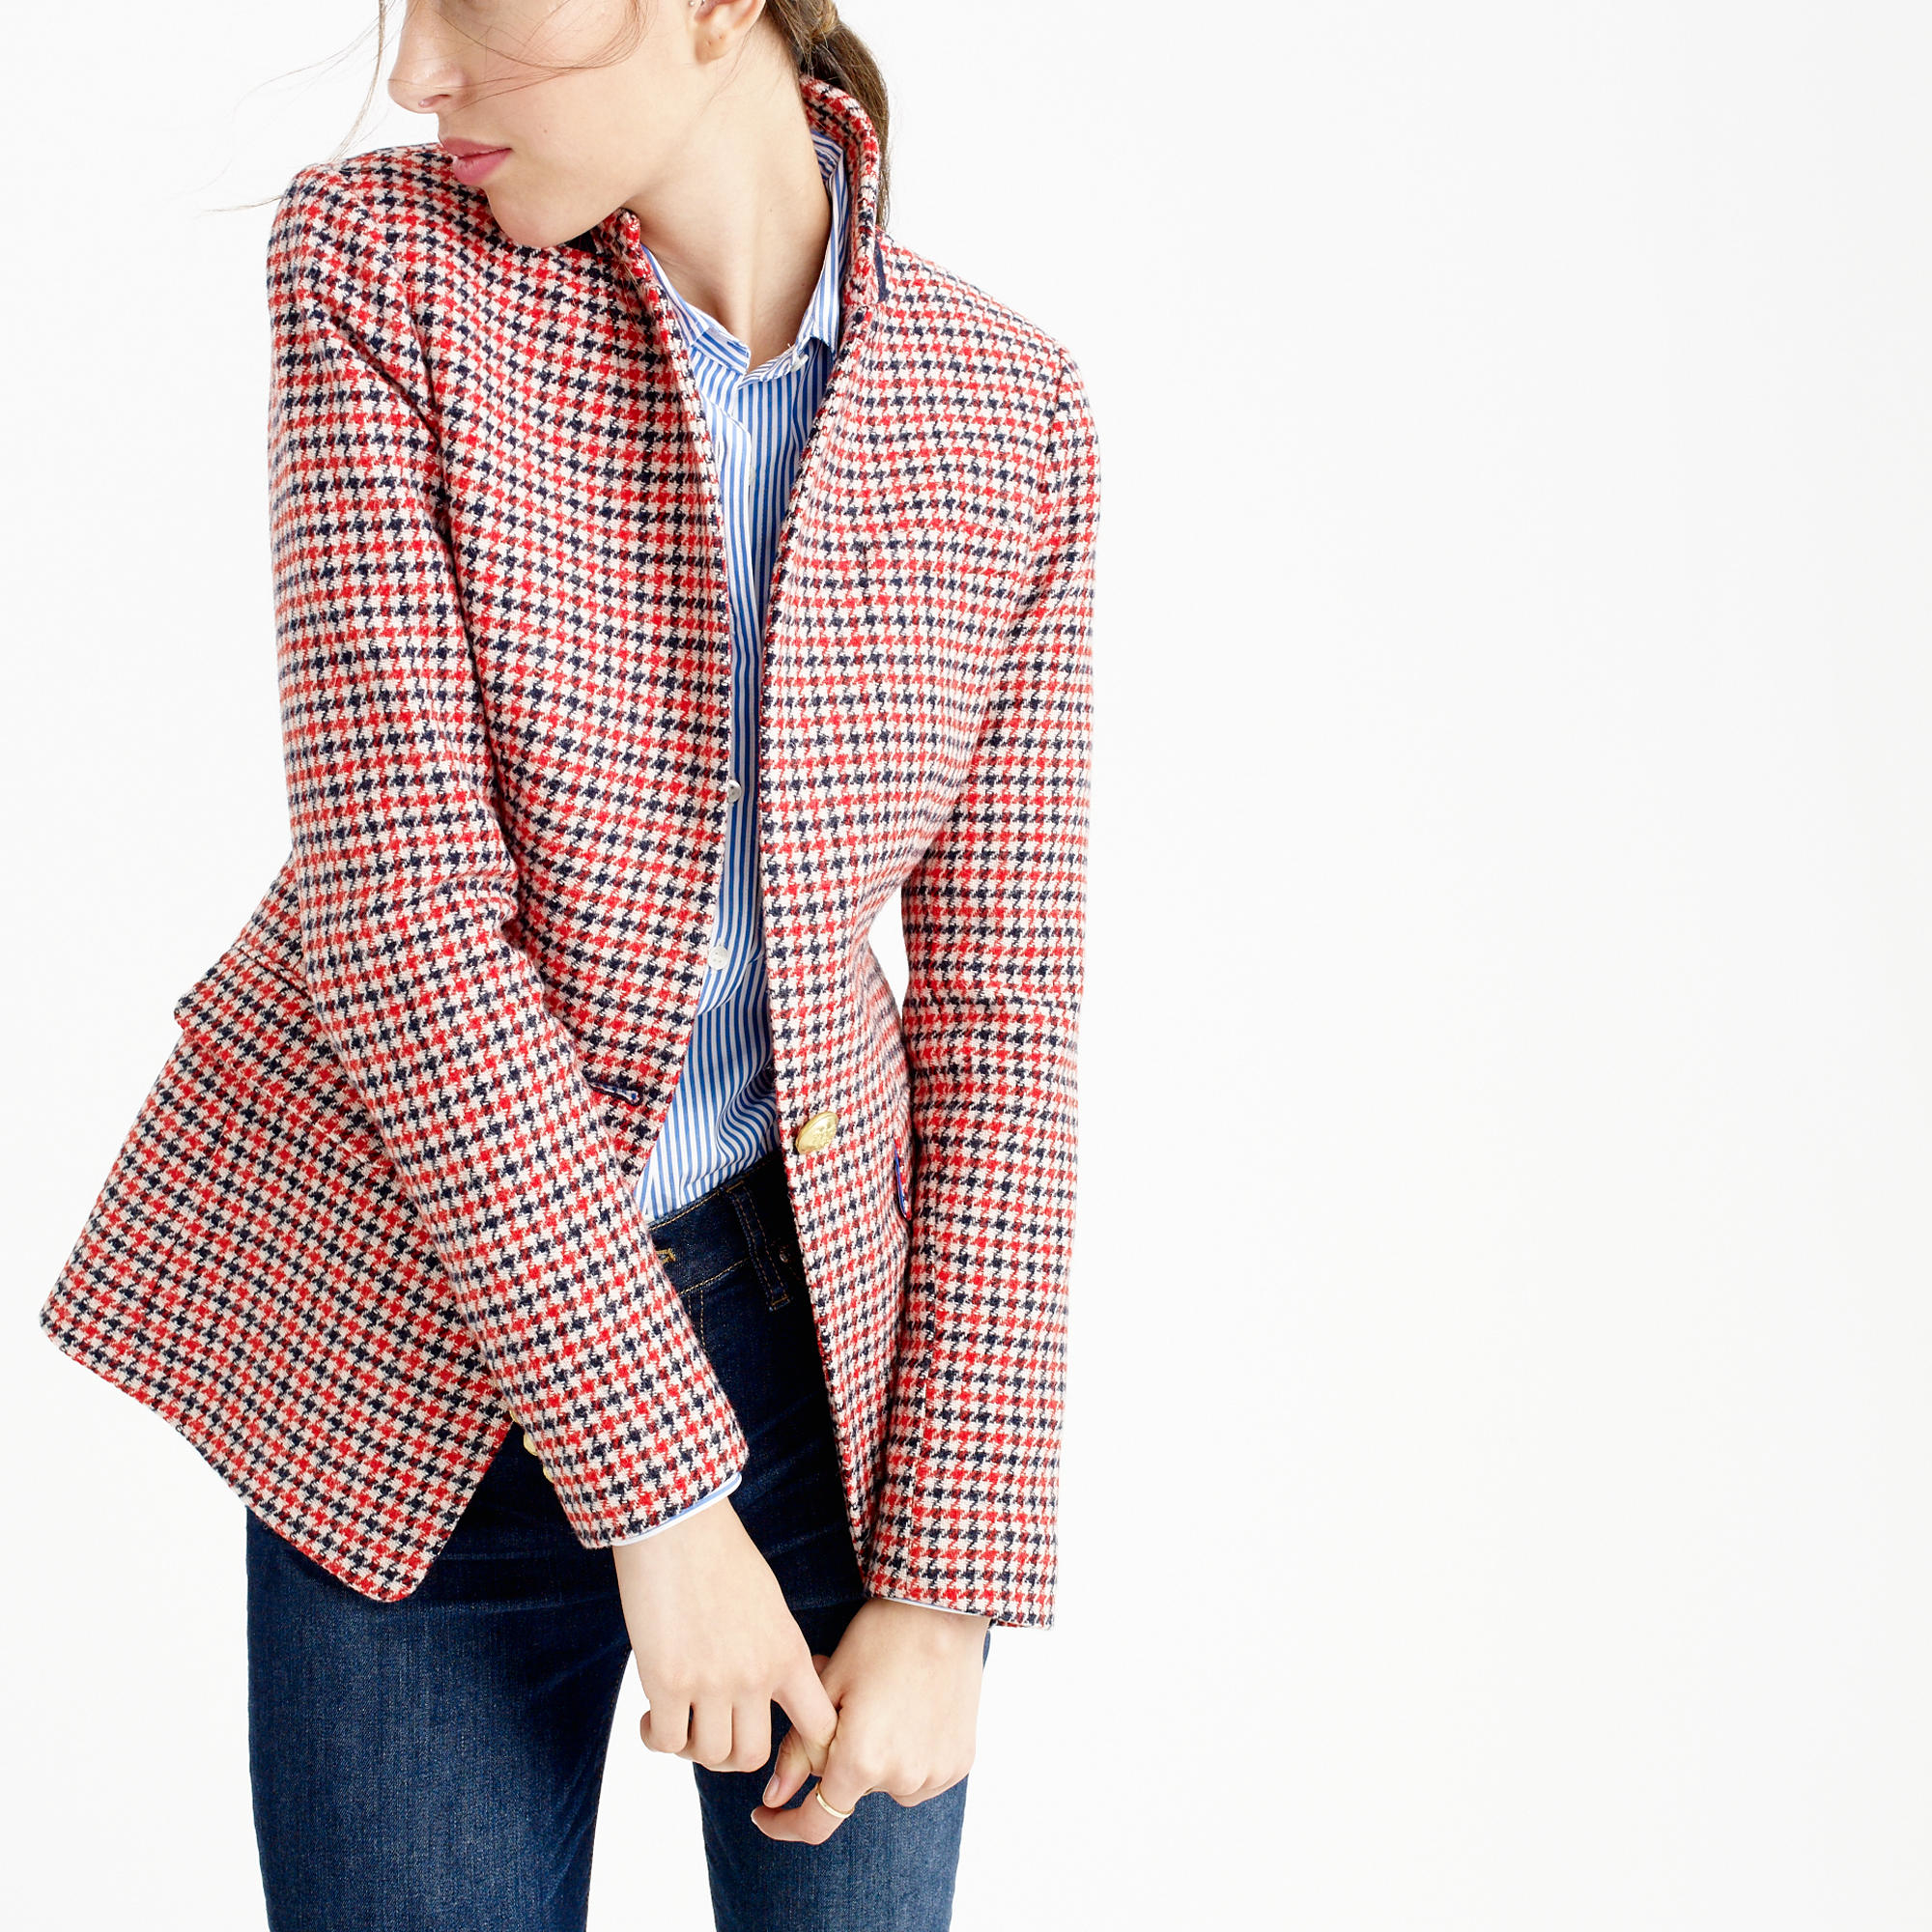 Lyst j crew regent blazer in red houndstooth plaid in red for Jcrew com